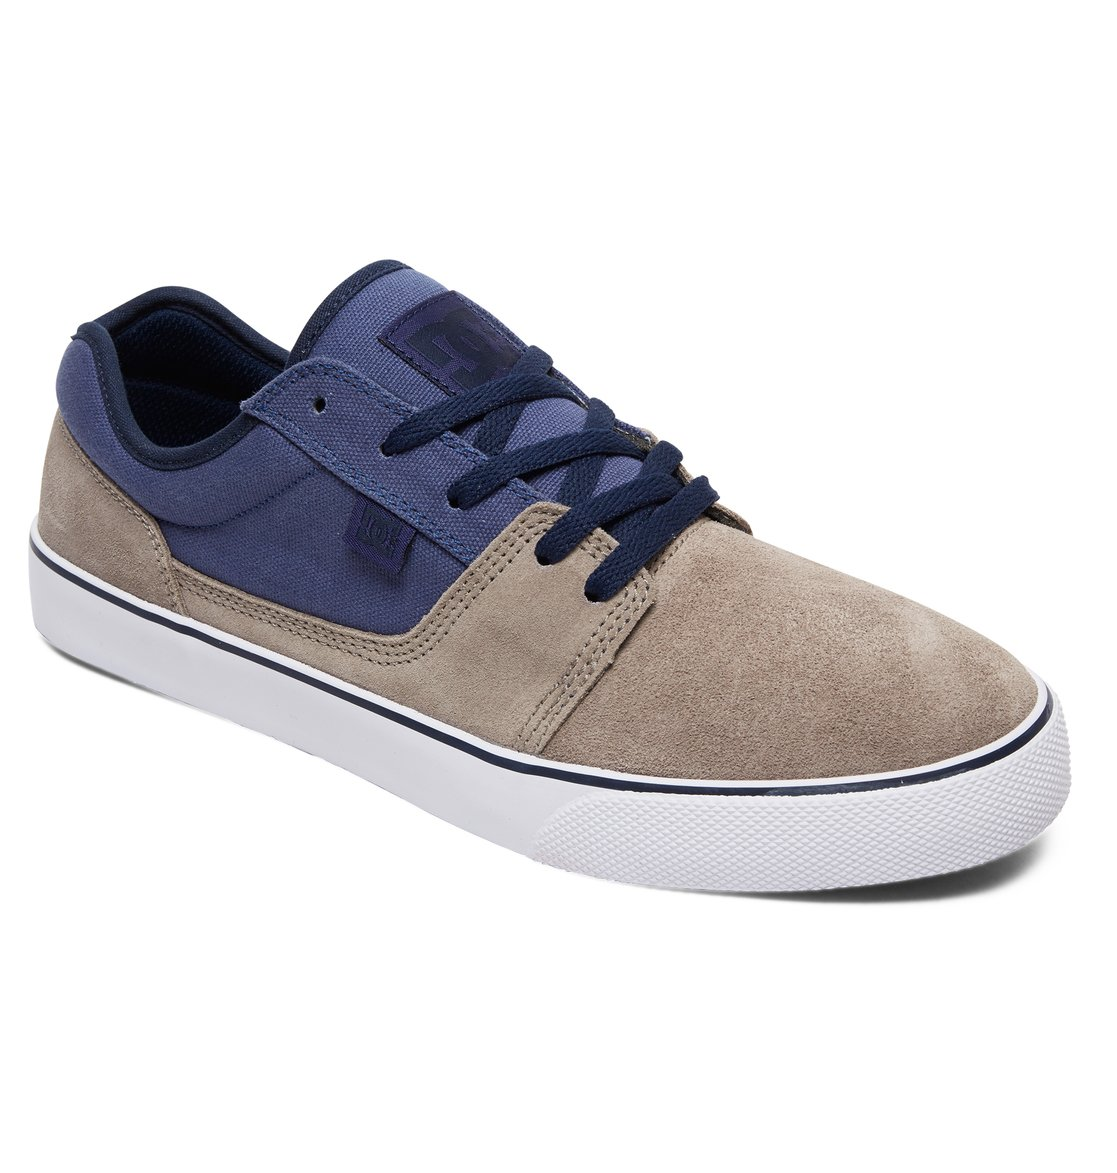 DC-Shoes-Tonik-Baskets-pour-Homme-302905 miniature 42